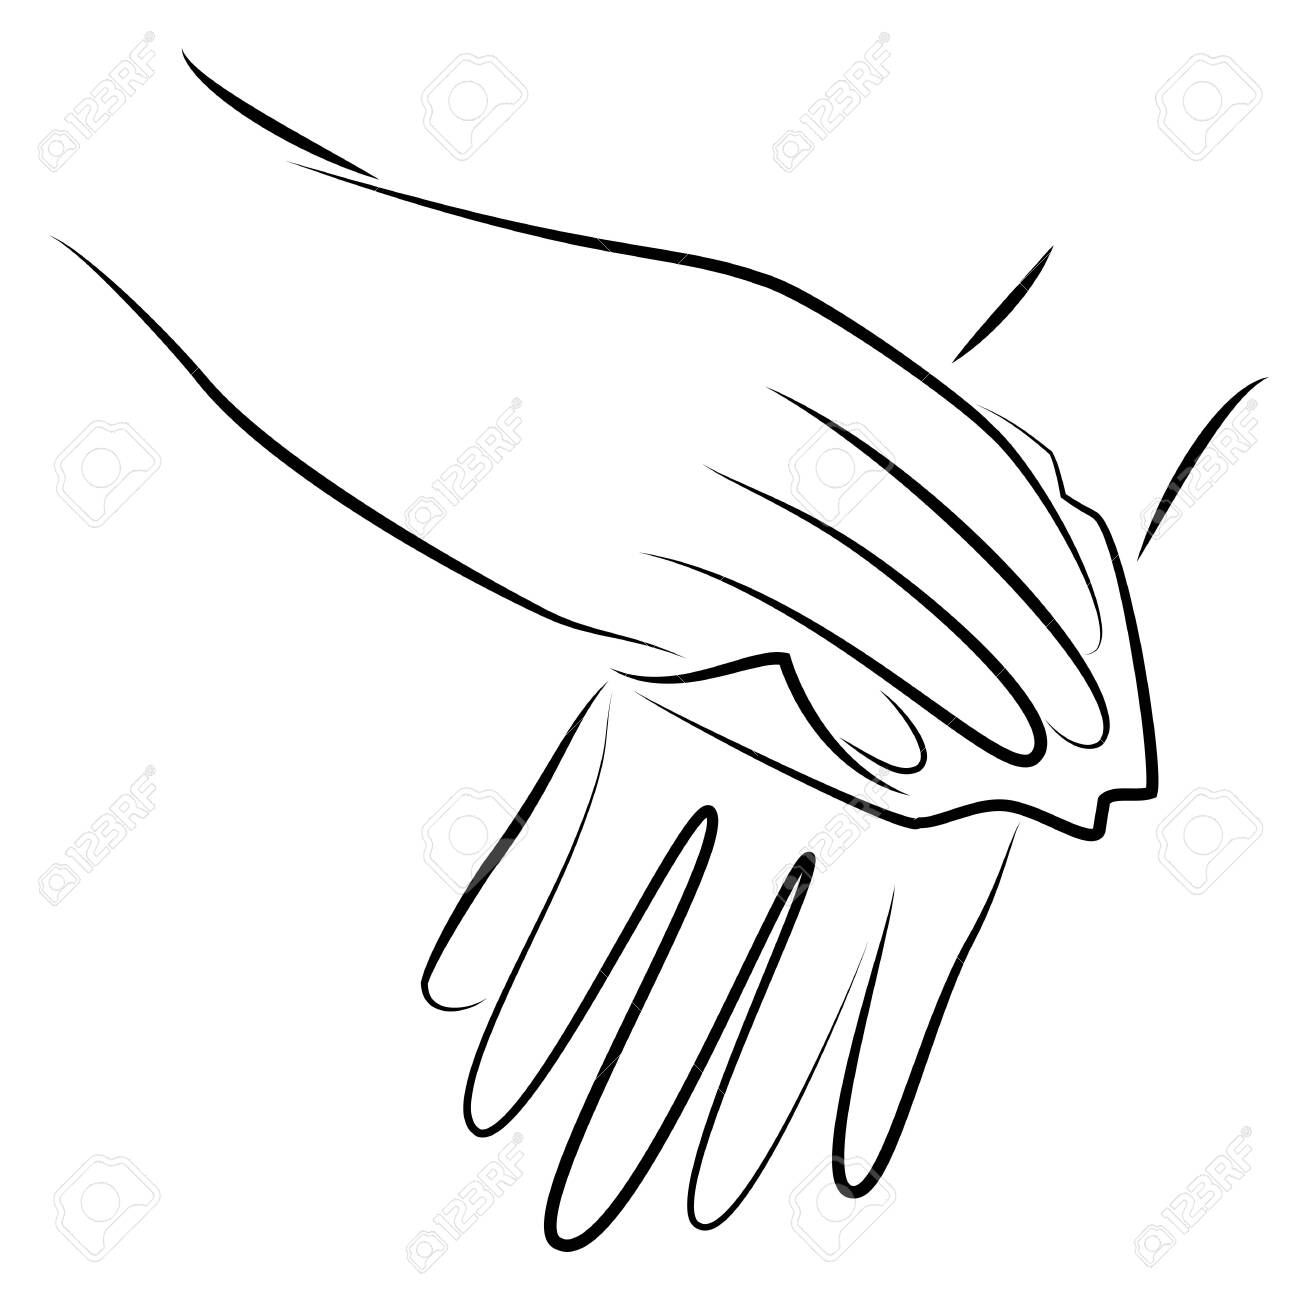 Rub your hands with a clean towel. Hygienic procedure. Disease prevention, good for health. Vector illustration - 148502204